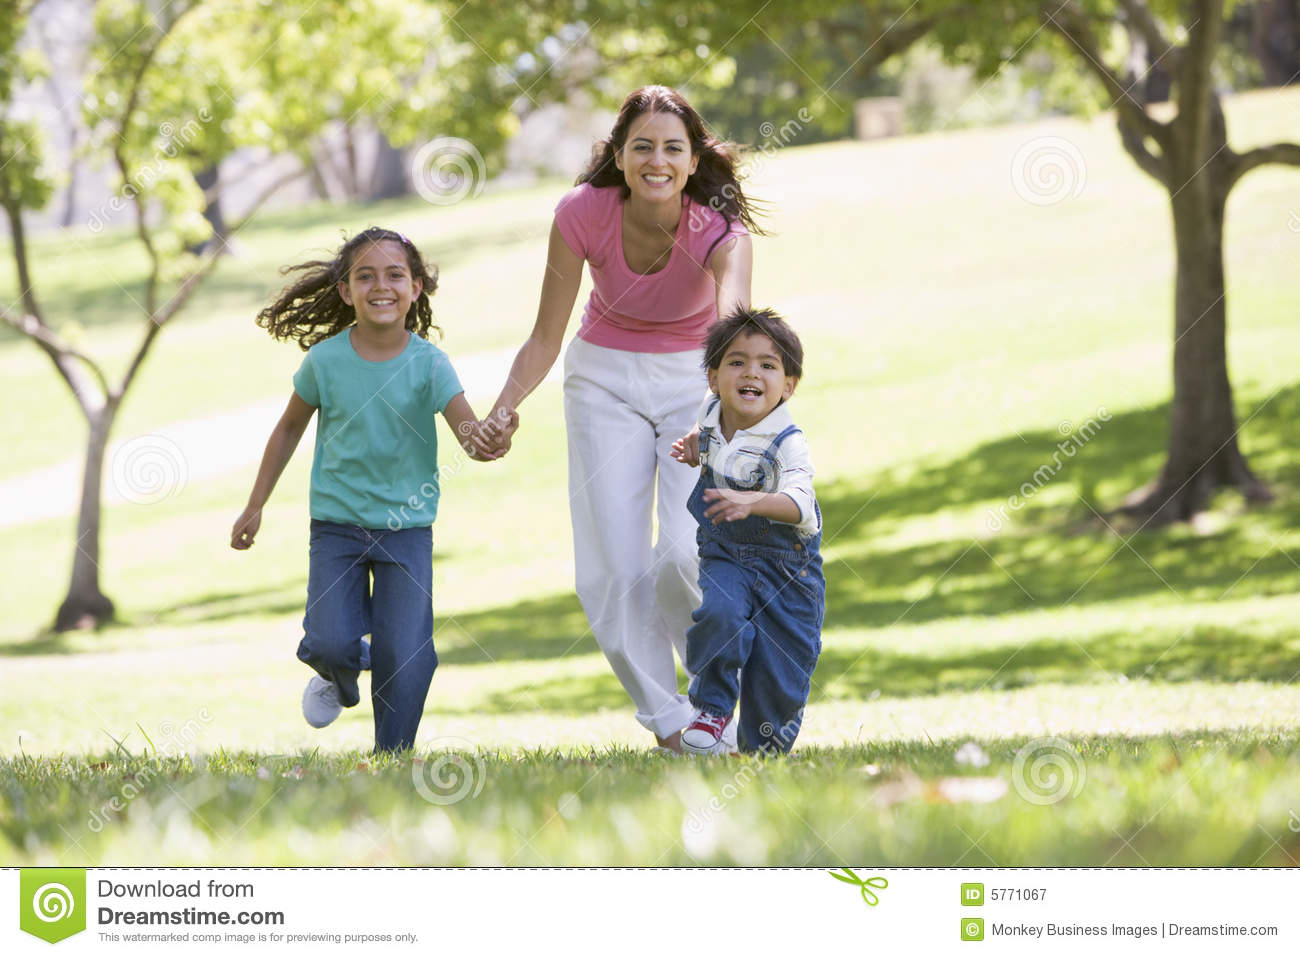 woman with two young children running smiling royalty free